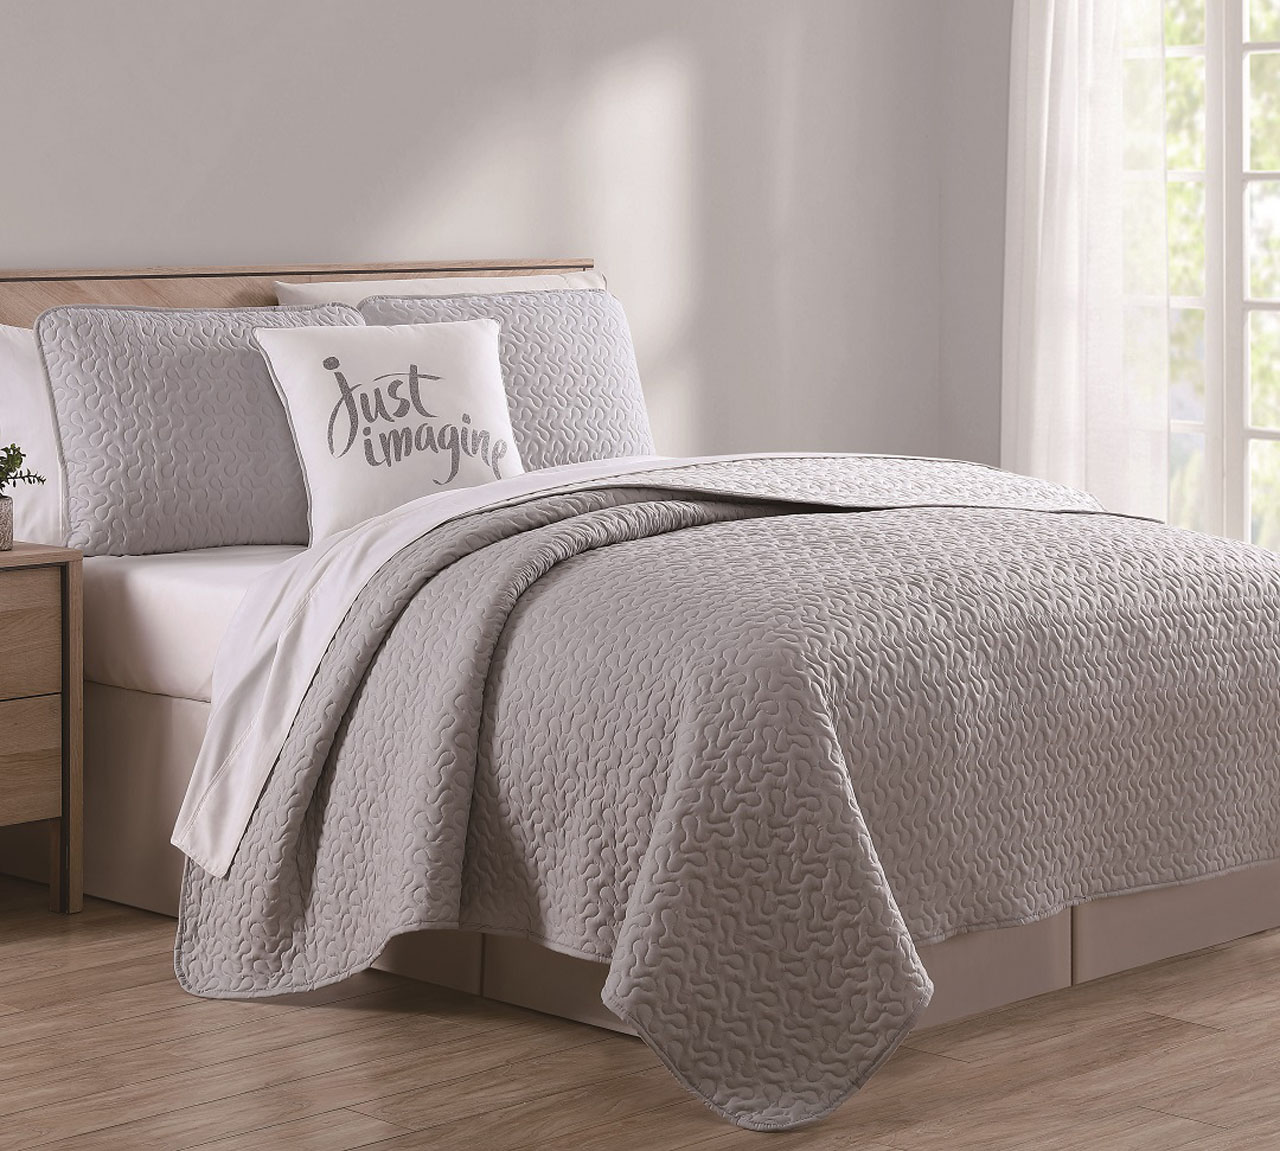 co gray mcgee vienna velvet styled bedding products quilt